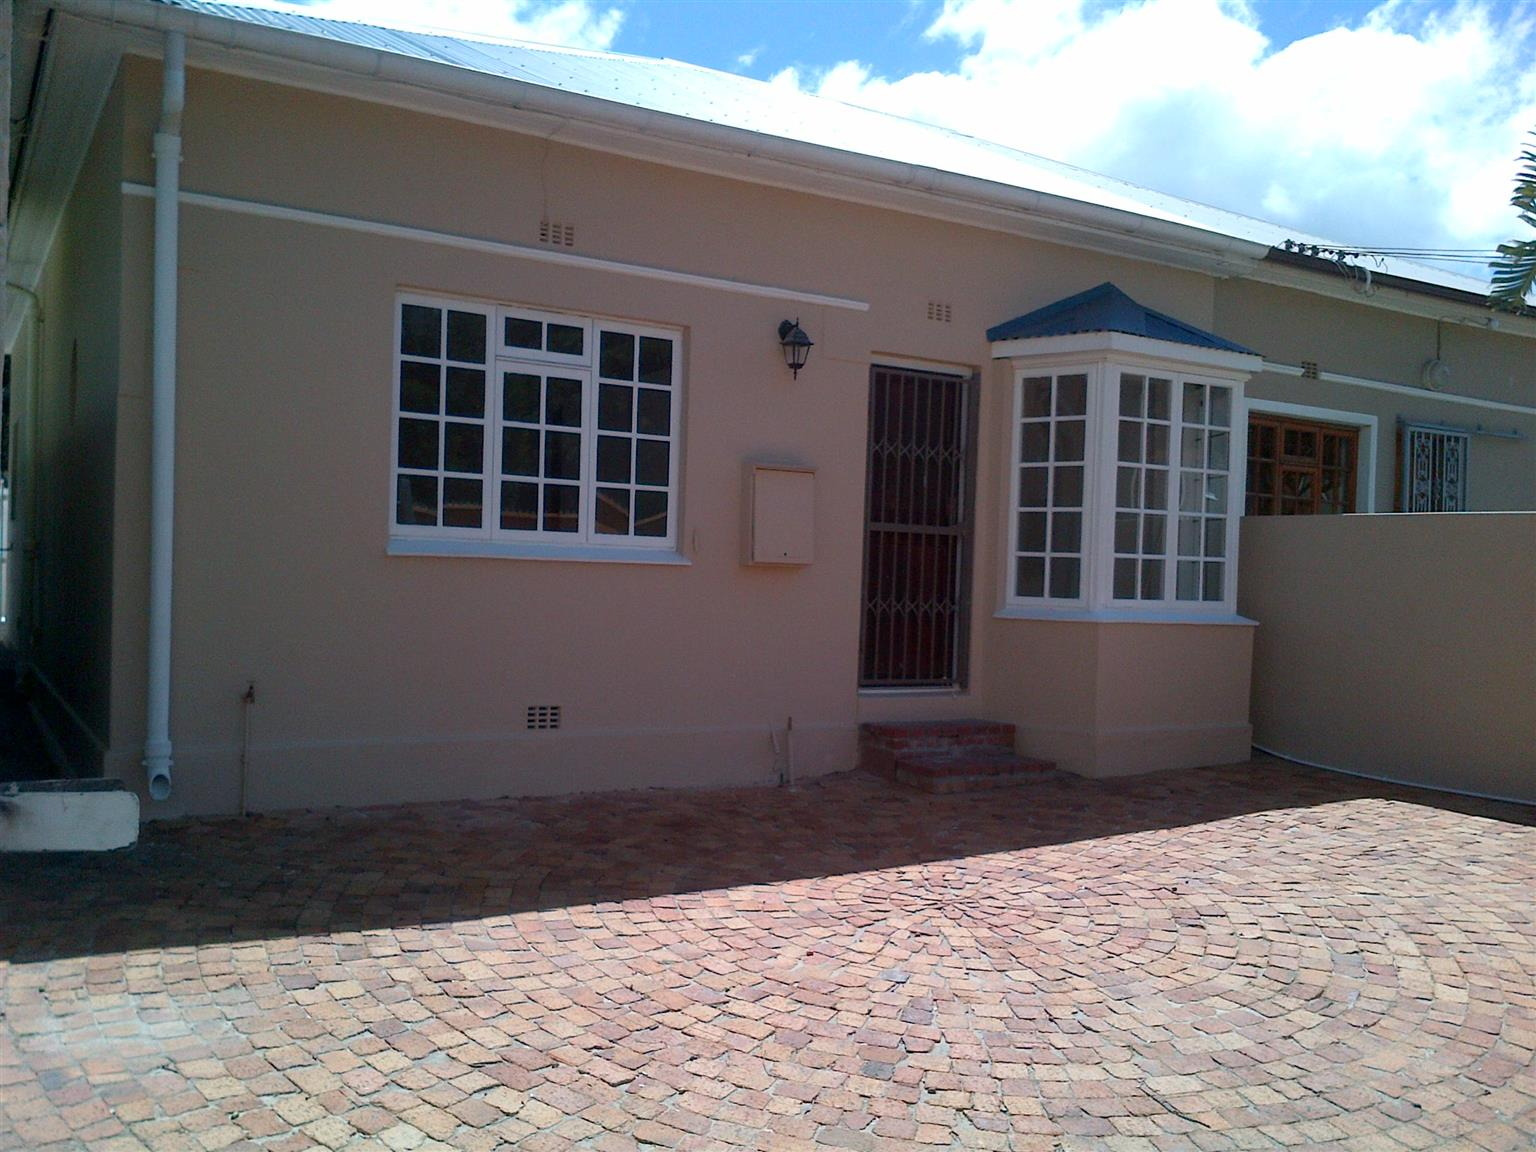 Charming, 2 bedroom house for rent in Claremont, Cape Town